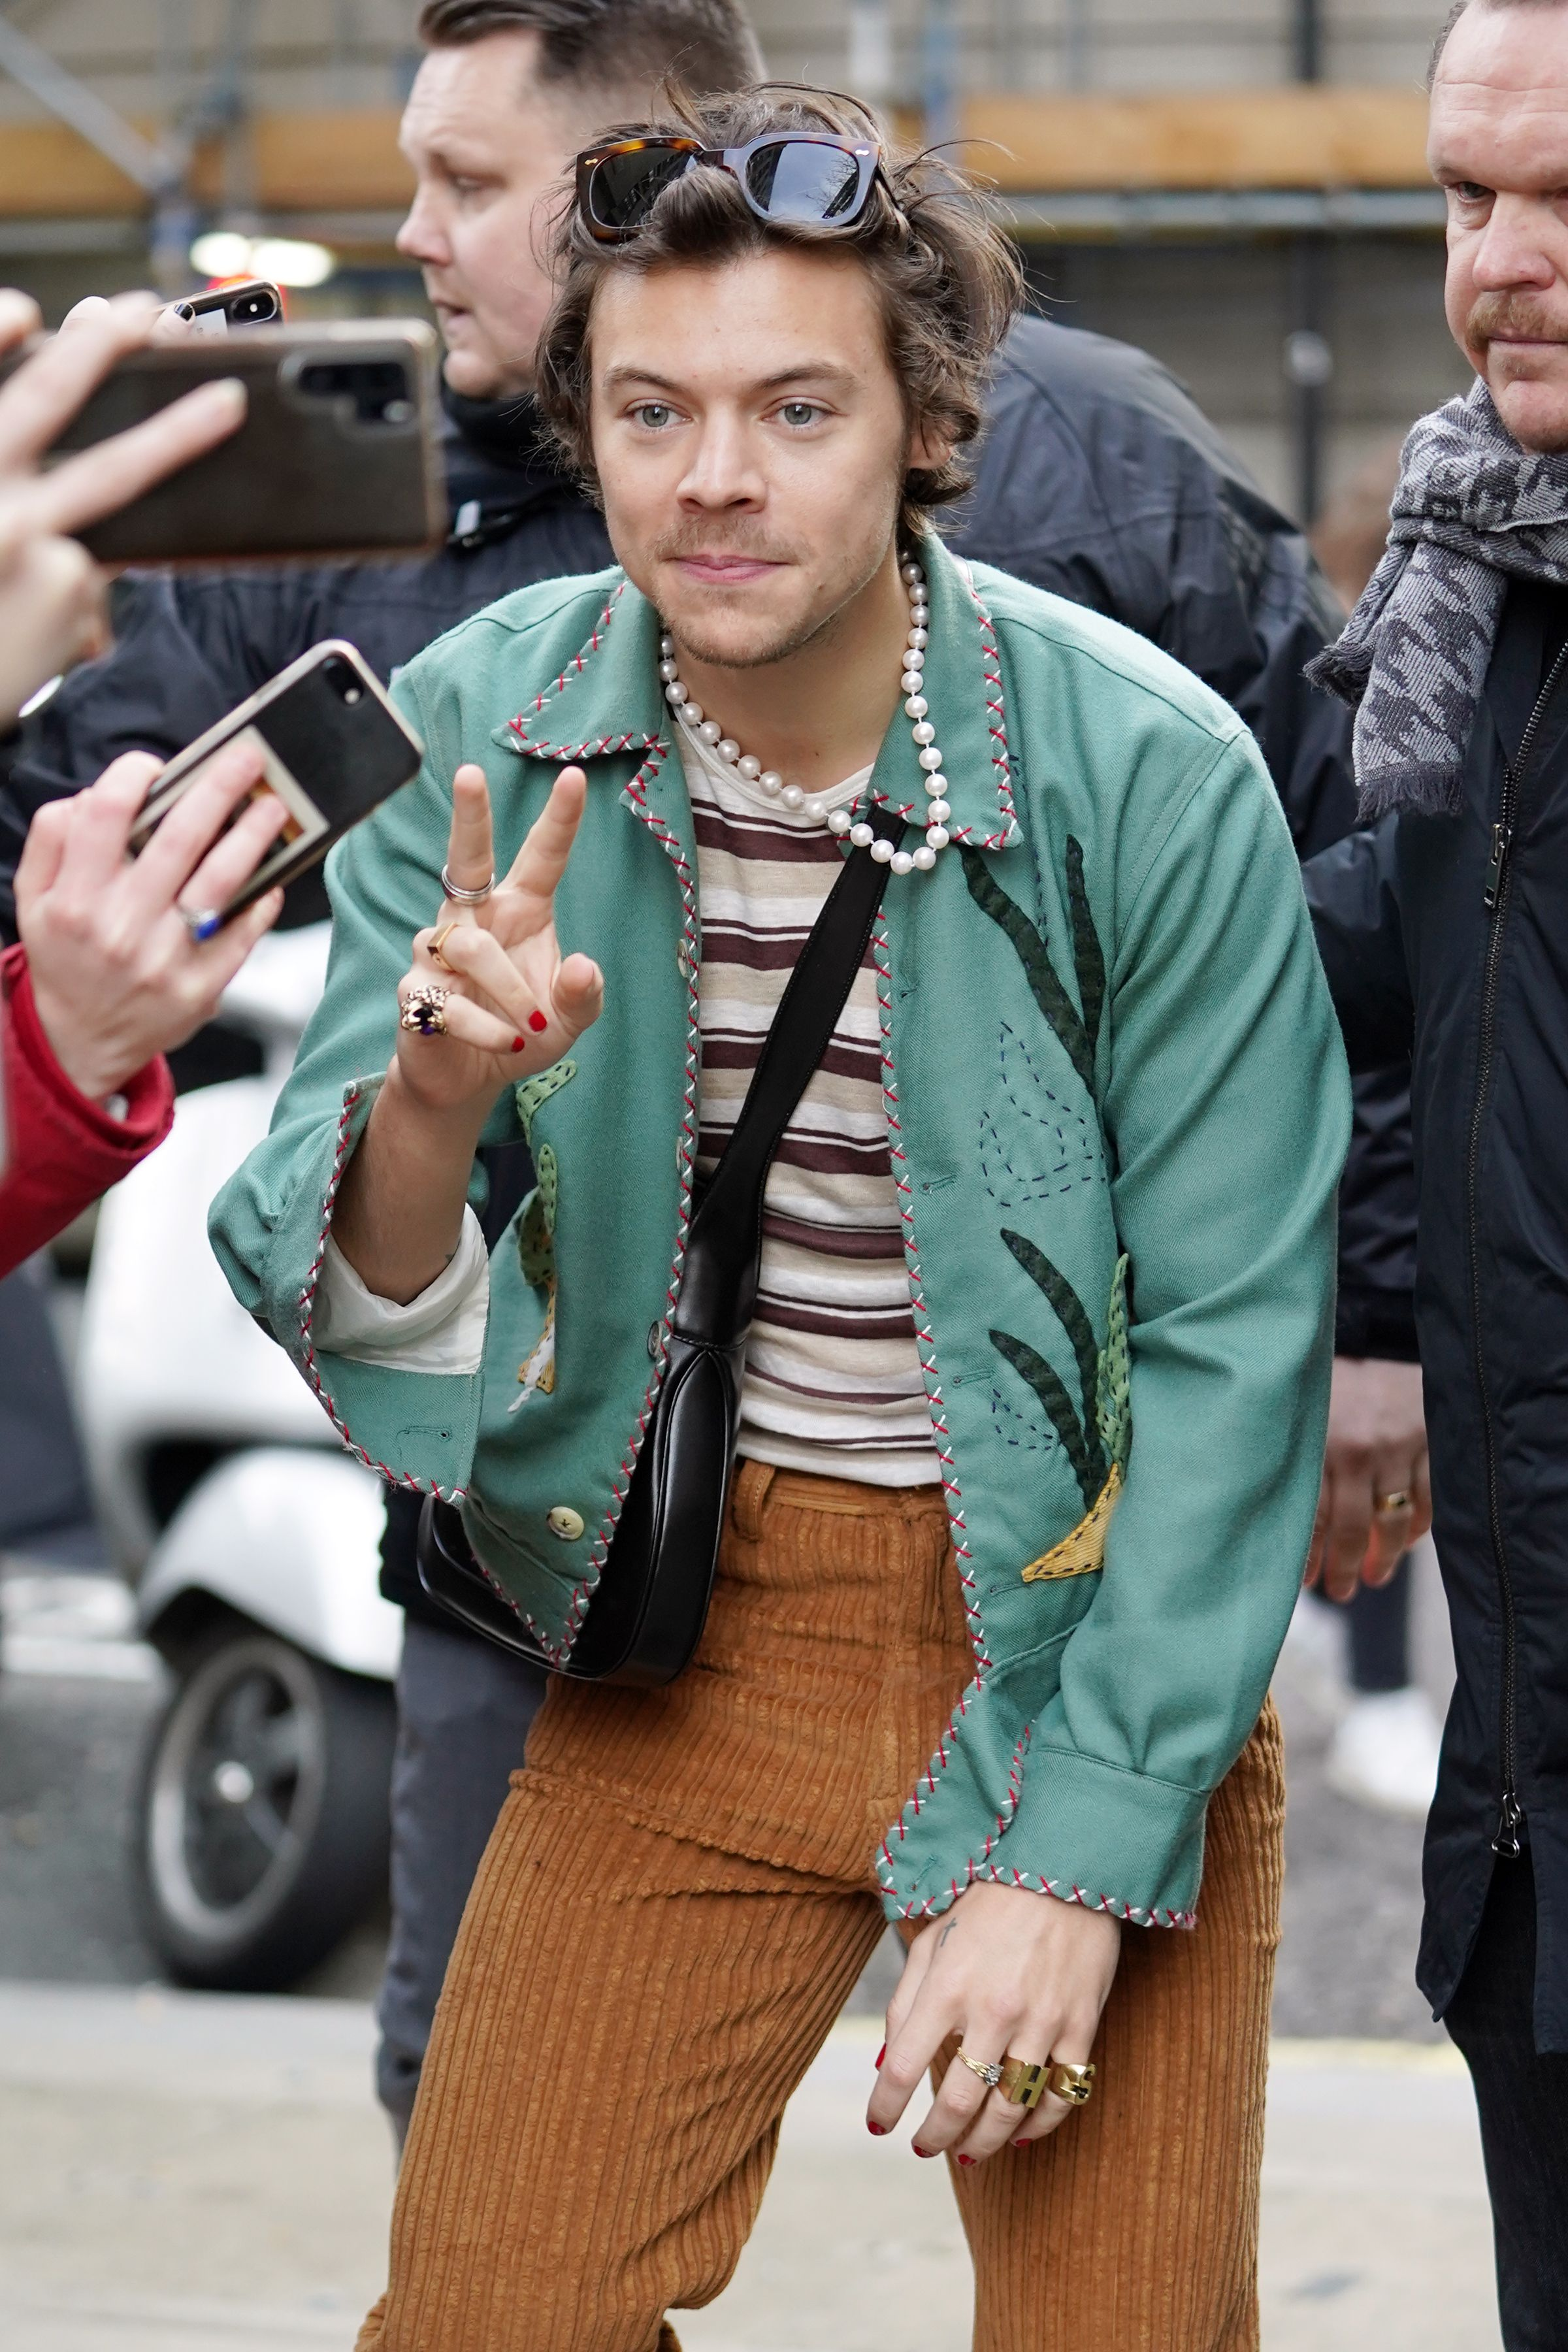 Harry Styles Wants to Remove All Gender Barriers in Fashion